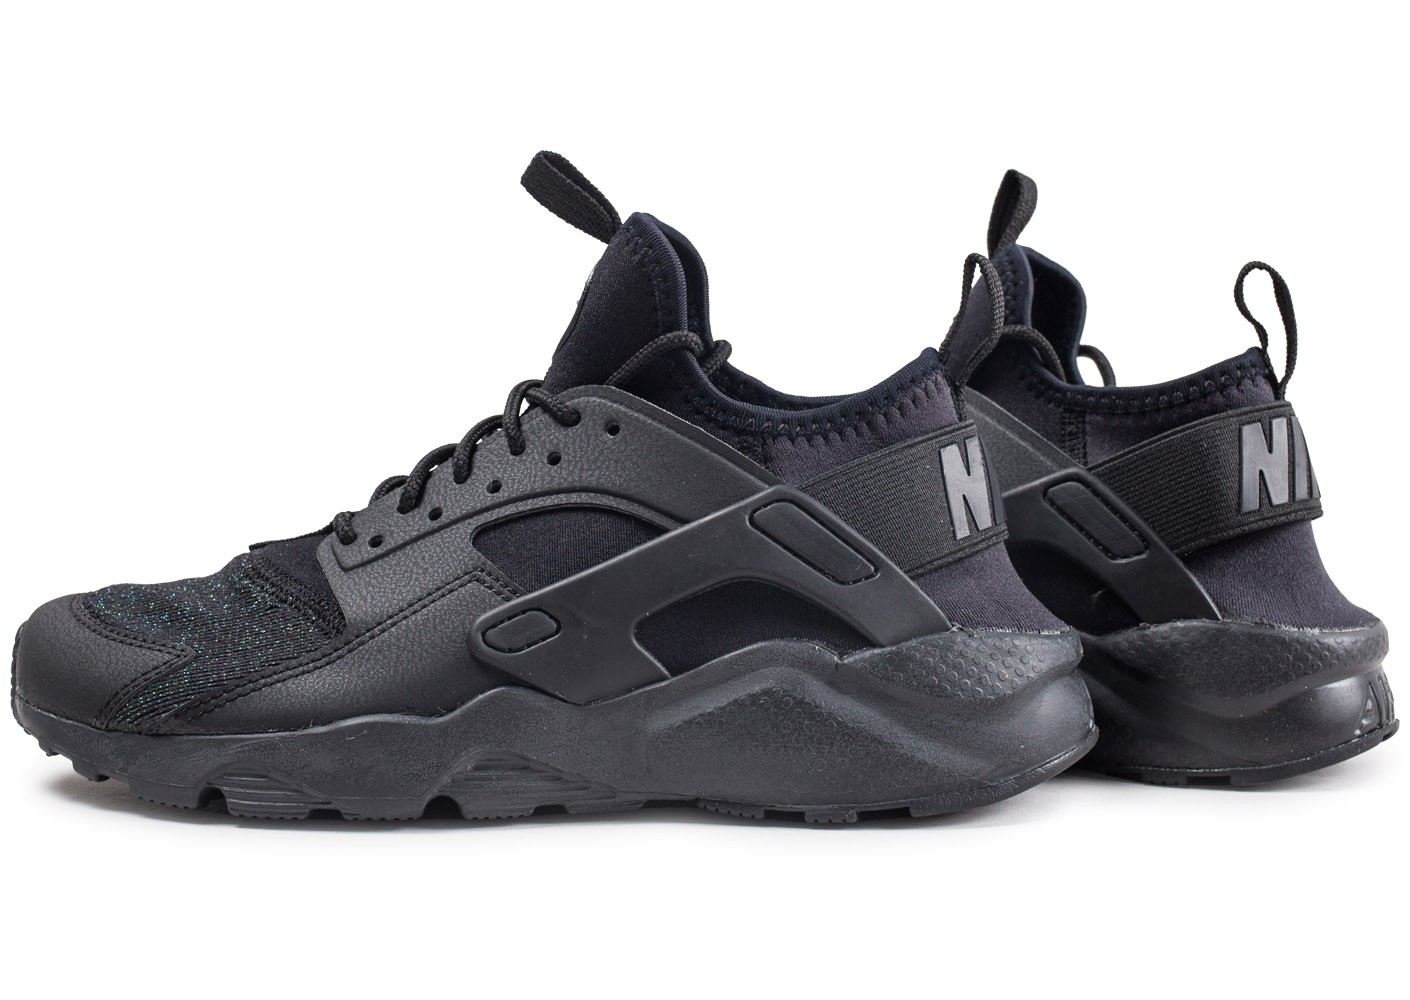 Nike Air Huarache Run Ultra noire junior Chaussures Enfant